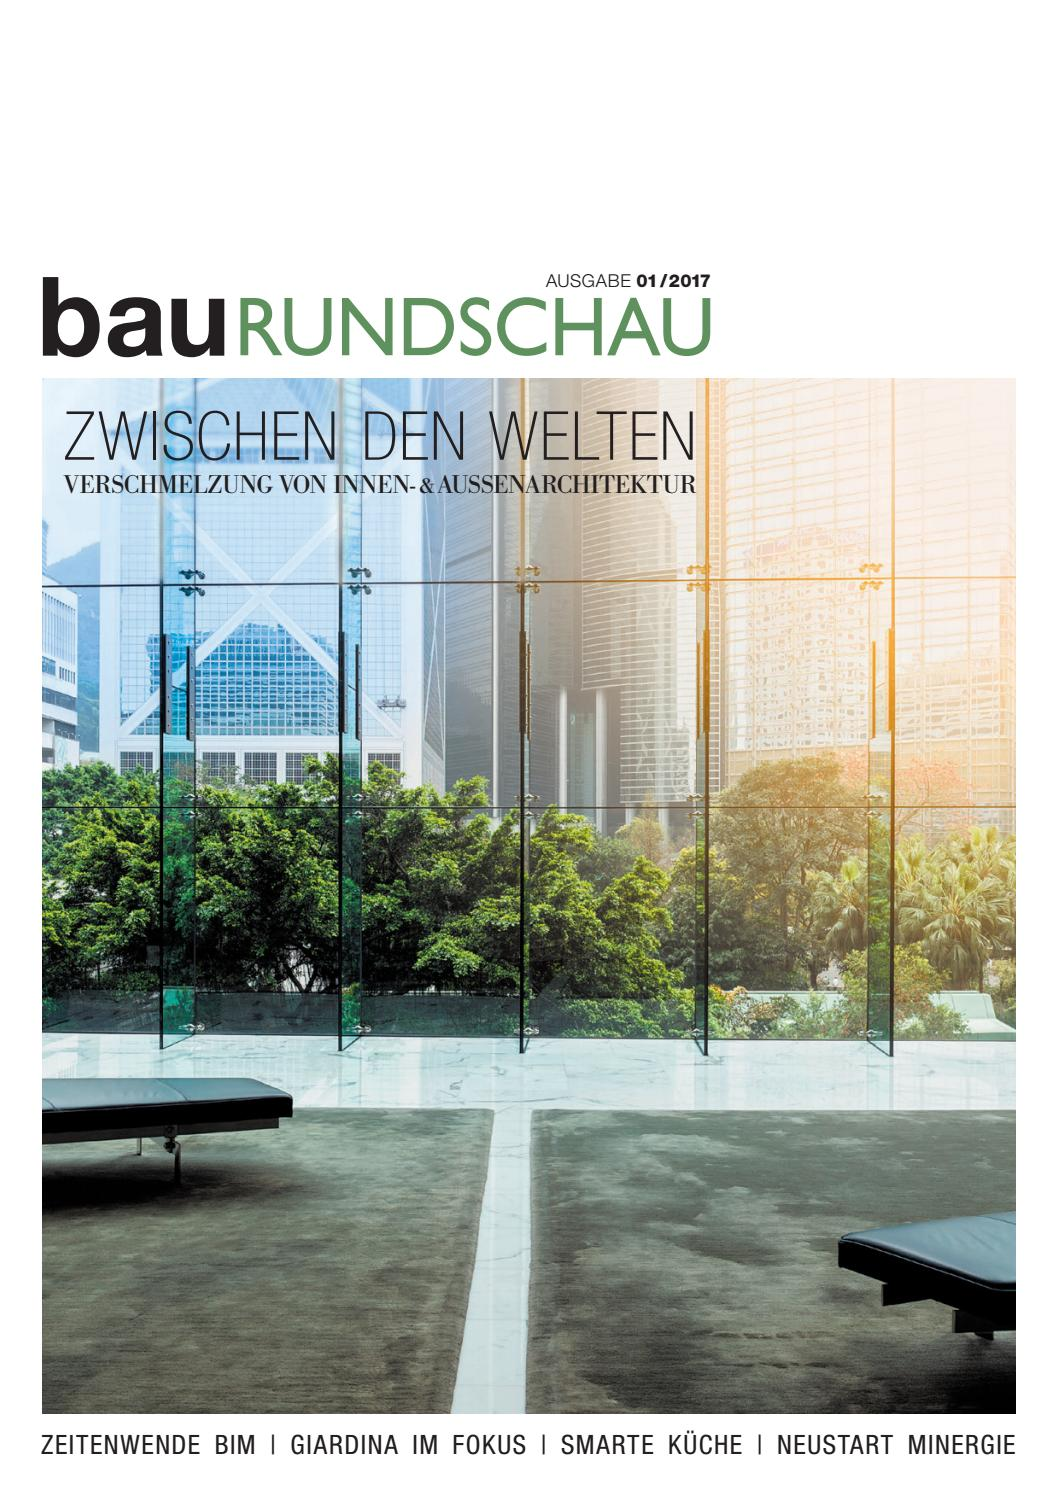 bauRUNDSCHAU 01/2017 by rundschauMEDIEN AG - issuu